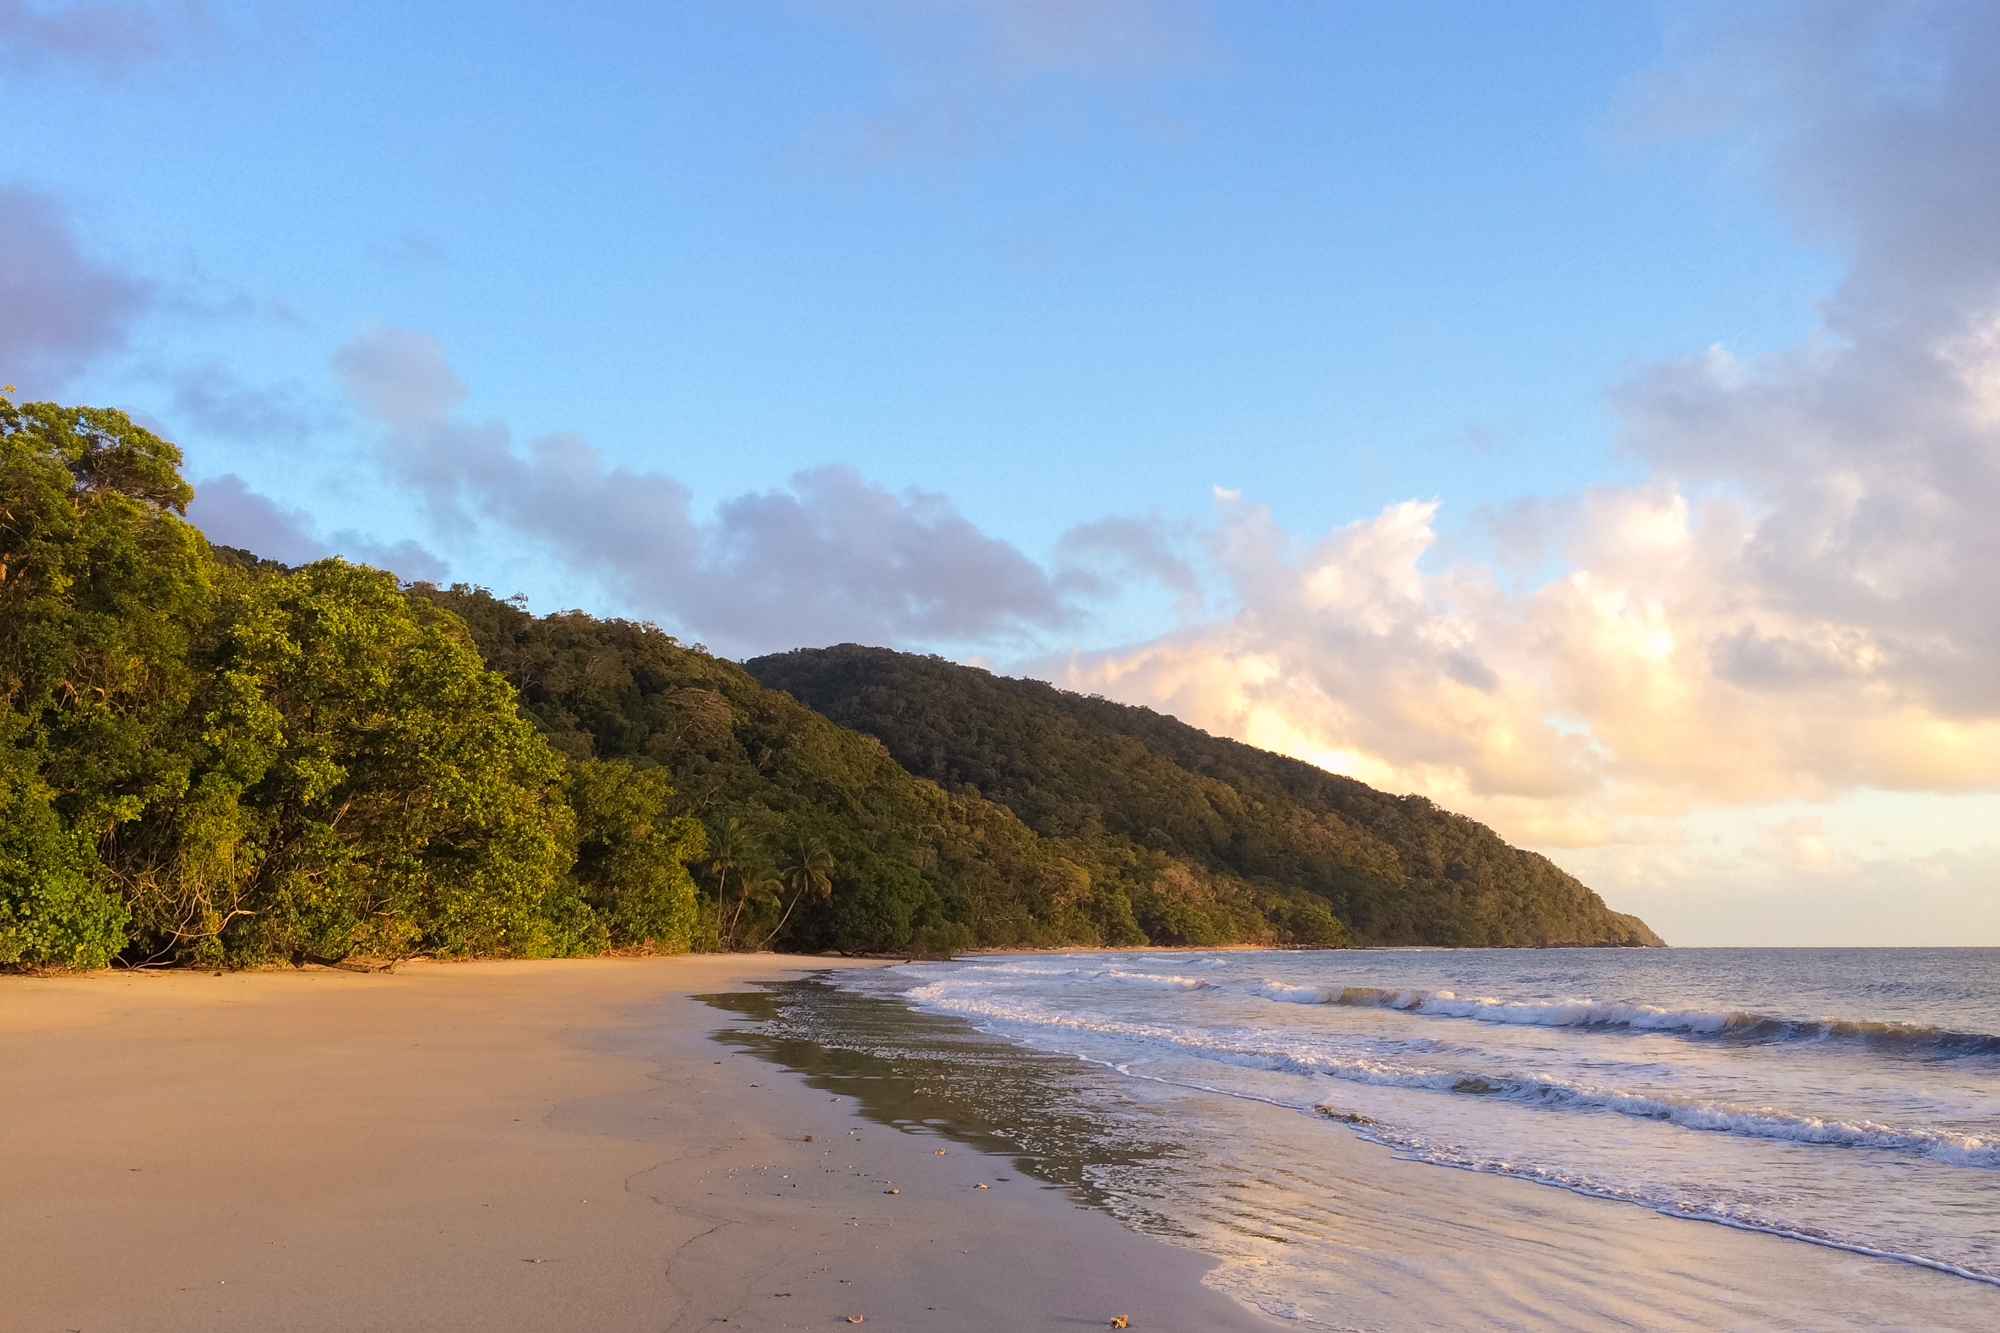 cape-tribulation-ocean-003g